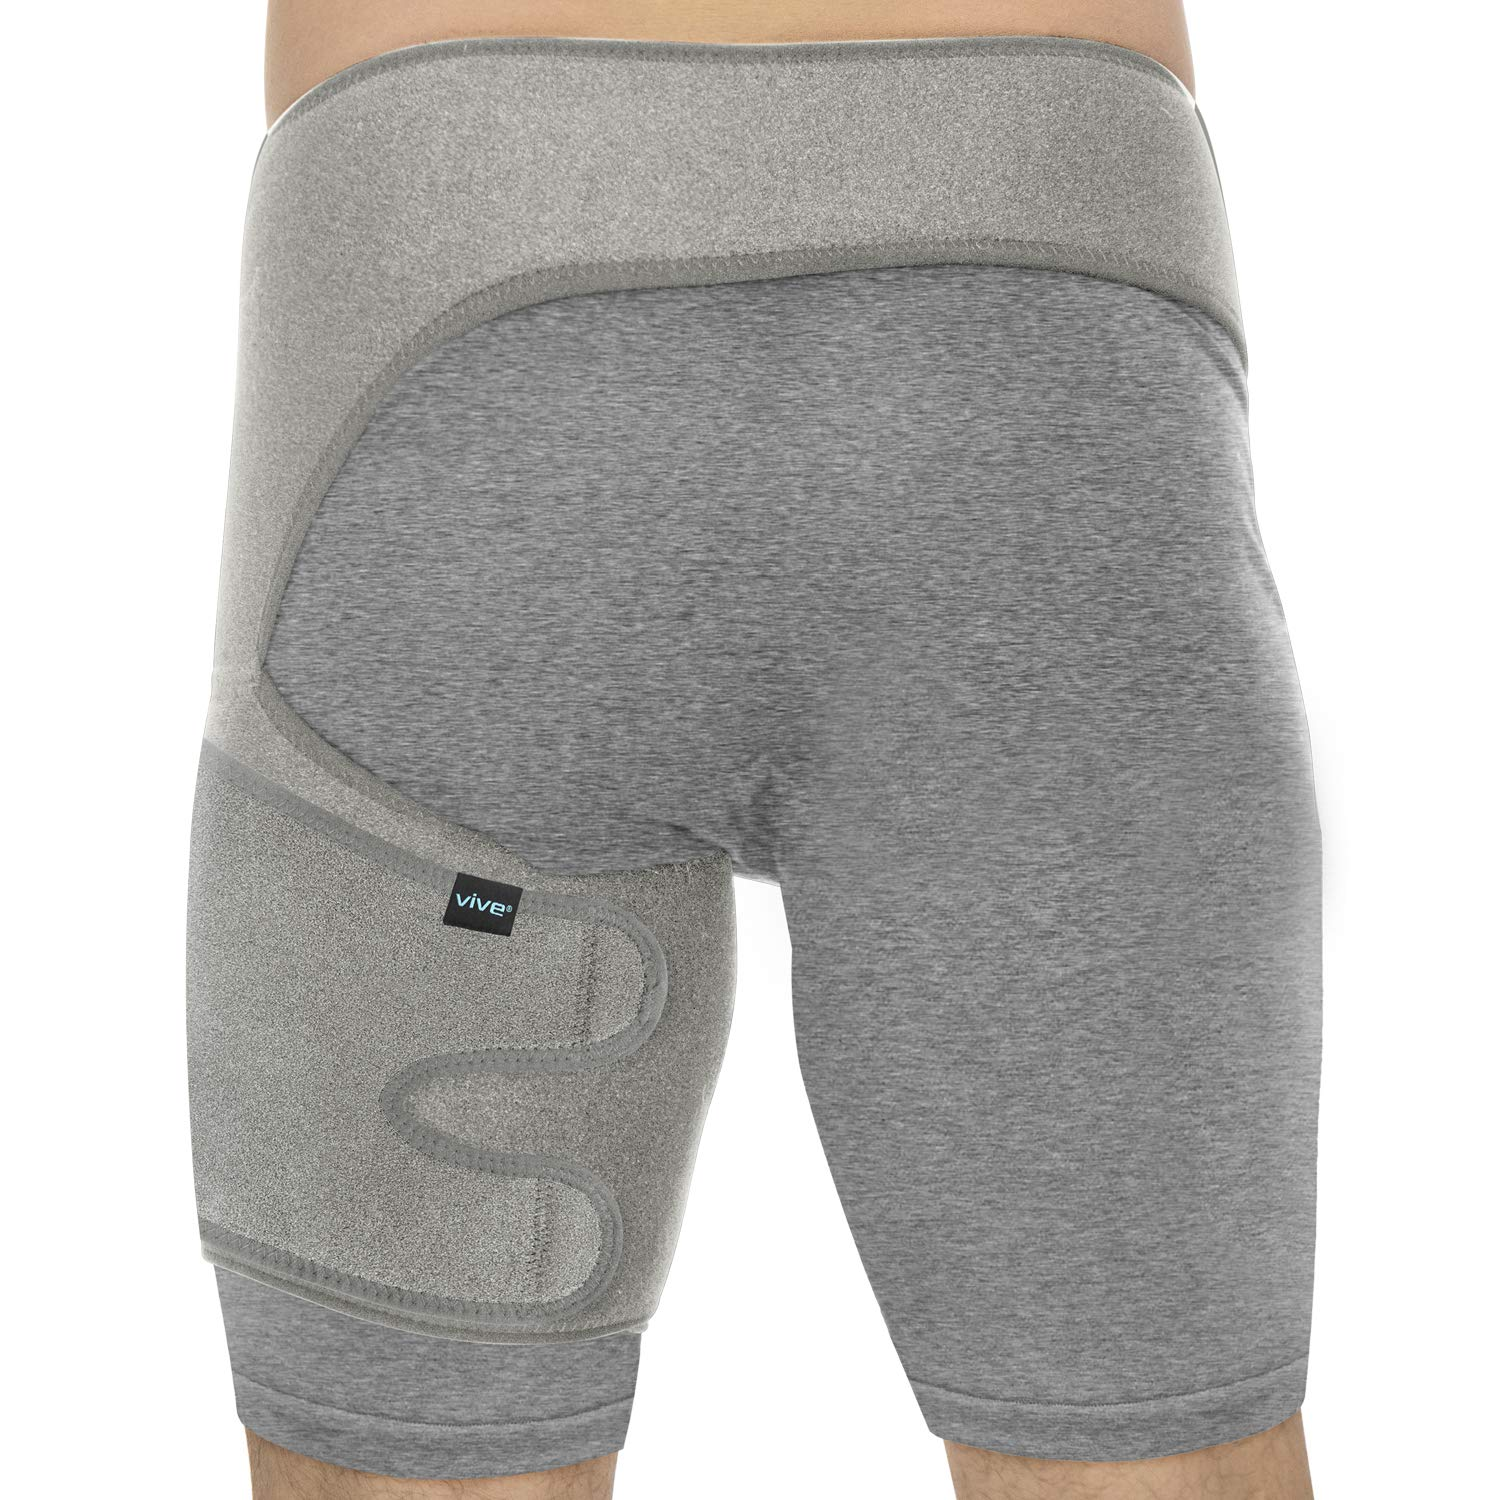 Vive Groin and Hip Brace - Sciatica Wrap for Men, Women - Compression Support for Nerve Pain Relief - Thigh, Hamstring Recovery for Joints, Flexor Strains, Pulled Muscles by Vive